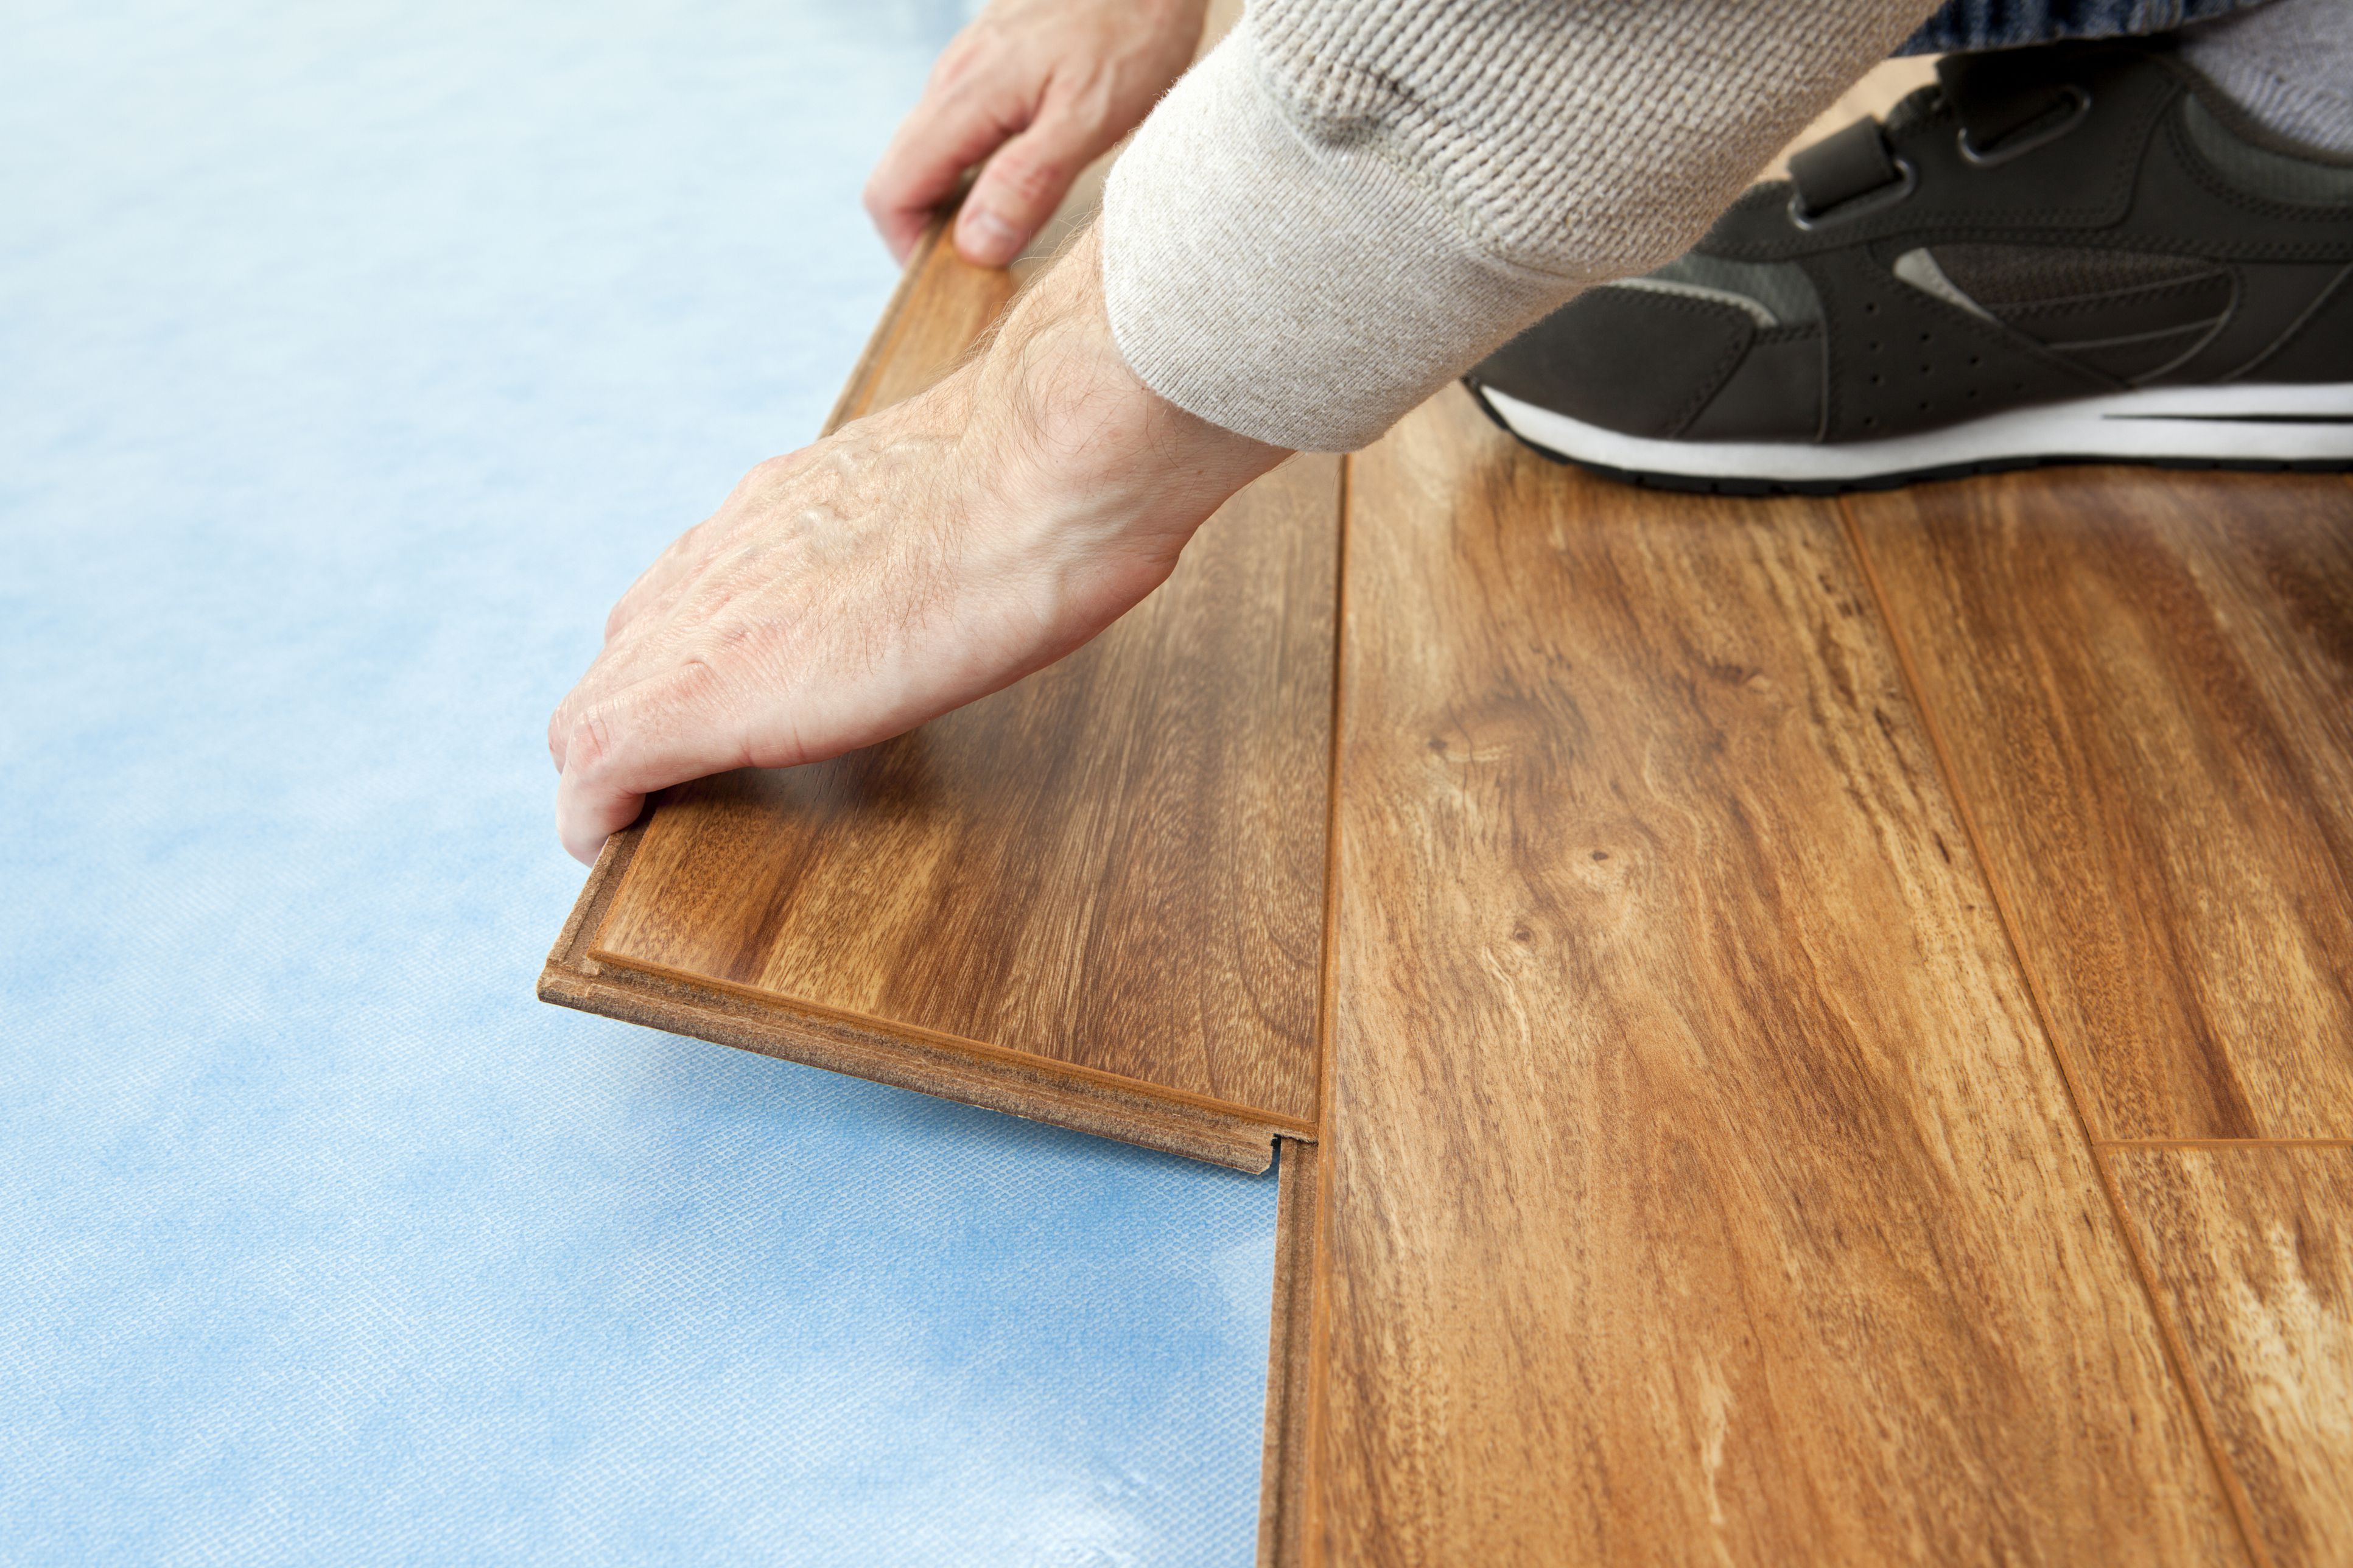 how to install engineered hardwood floor over plywood of floor sound barriers that dampen noise between floors pertaining to installing new floor 155283804 582b79a25f9b58d5b17e597f